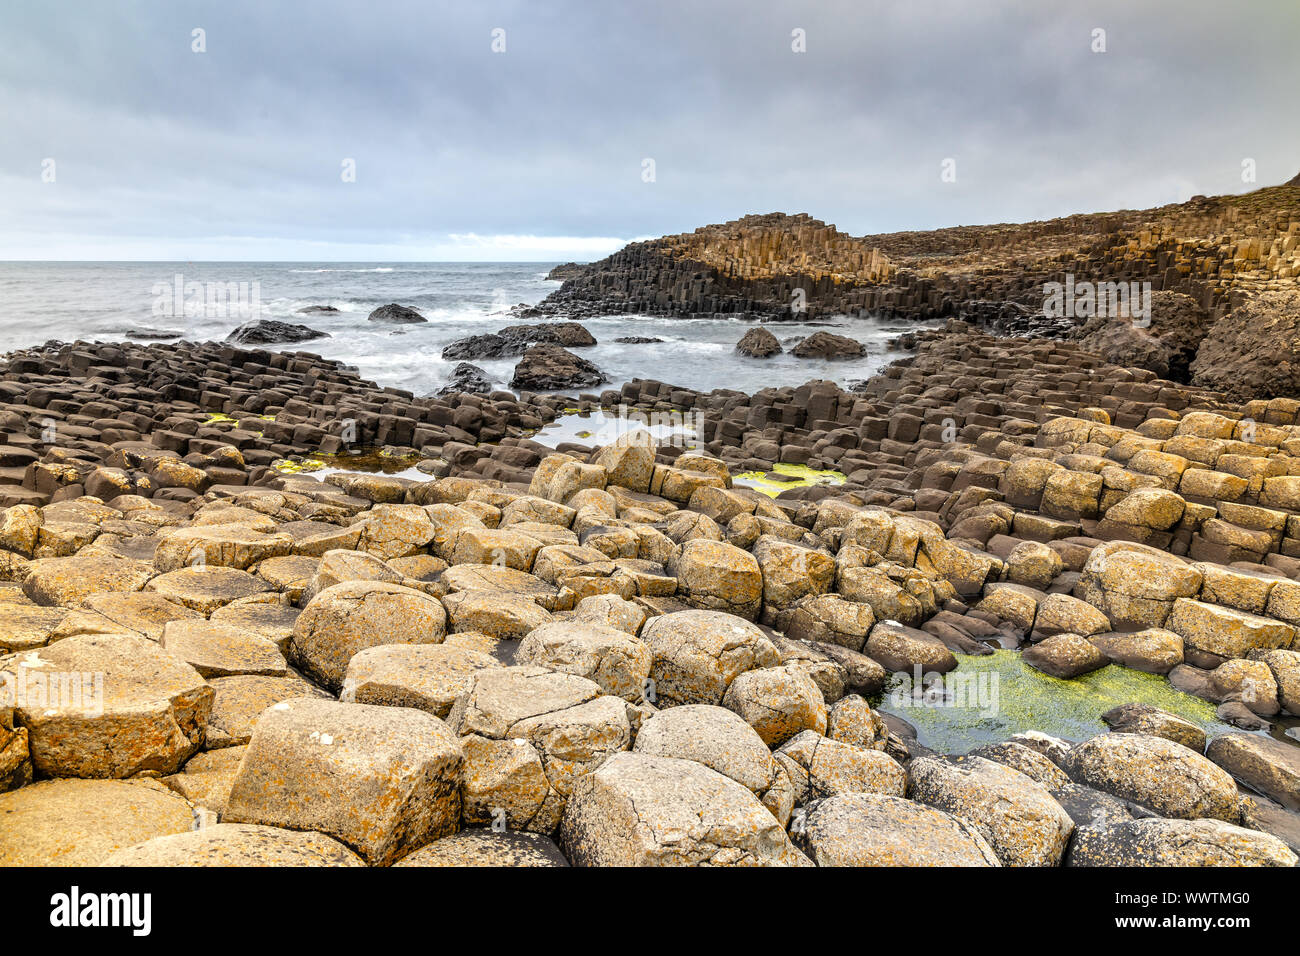 Impression of the Giants Causeway in Northern Ireland Stock Photo